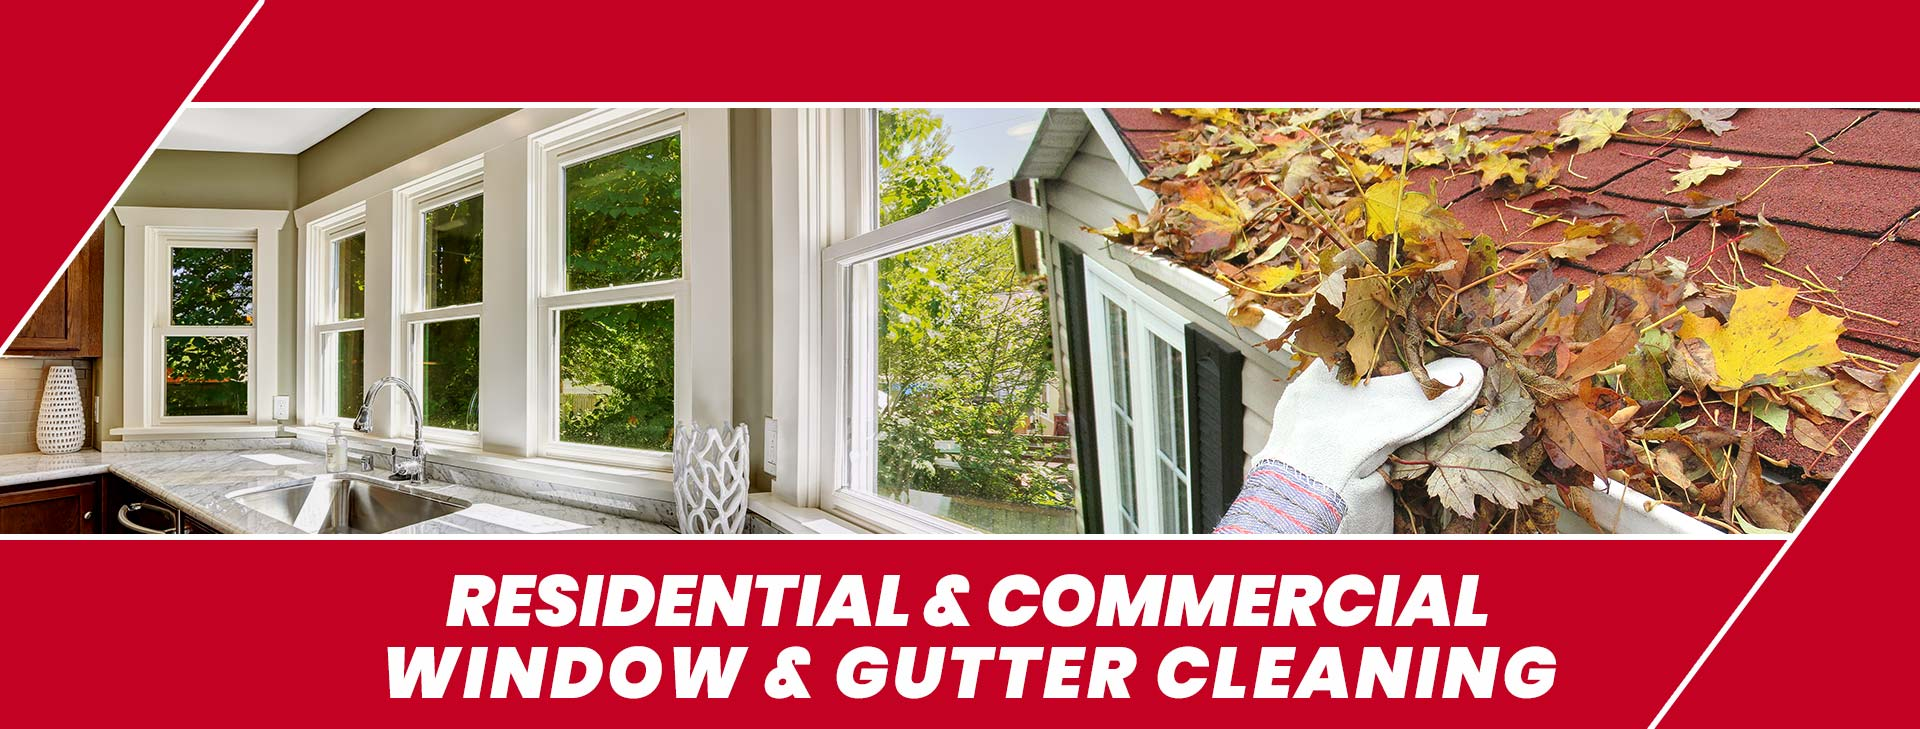 residential and commercial window and gutter cleaning